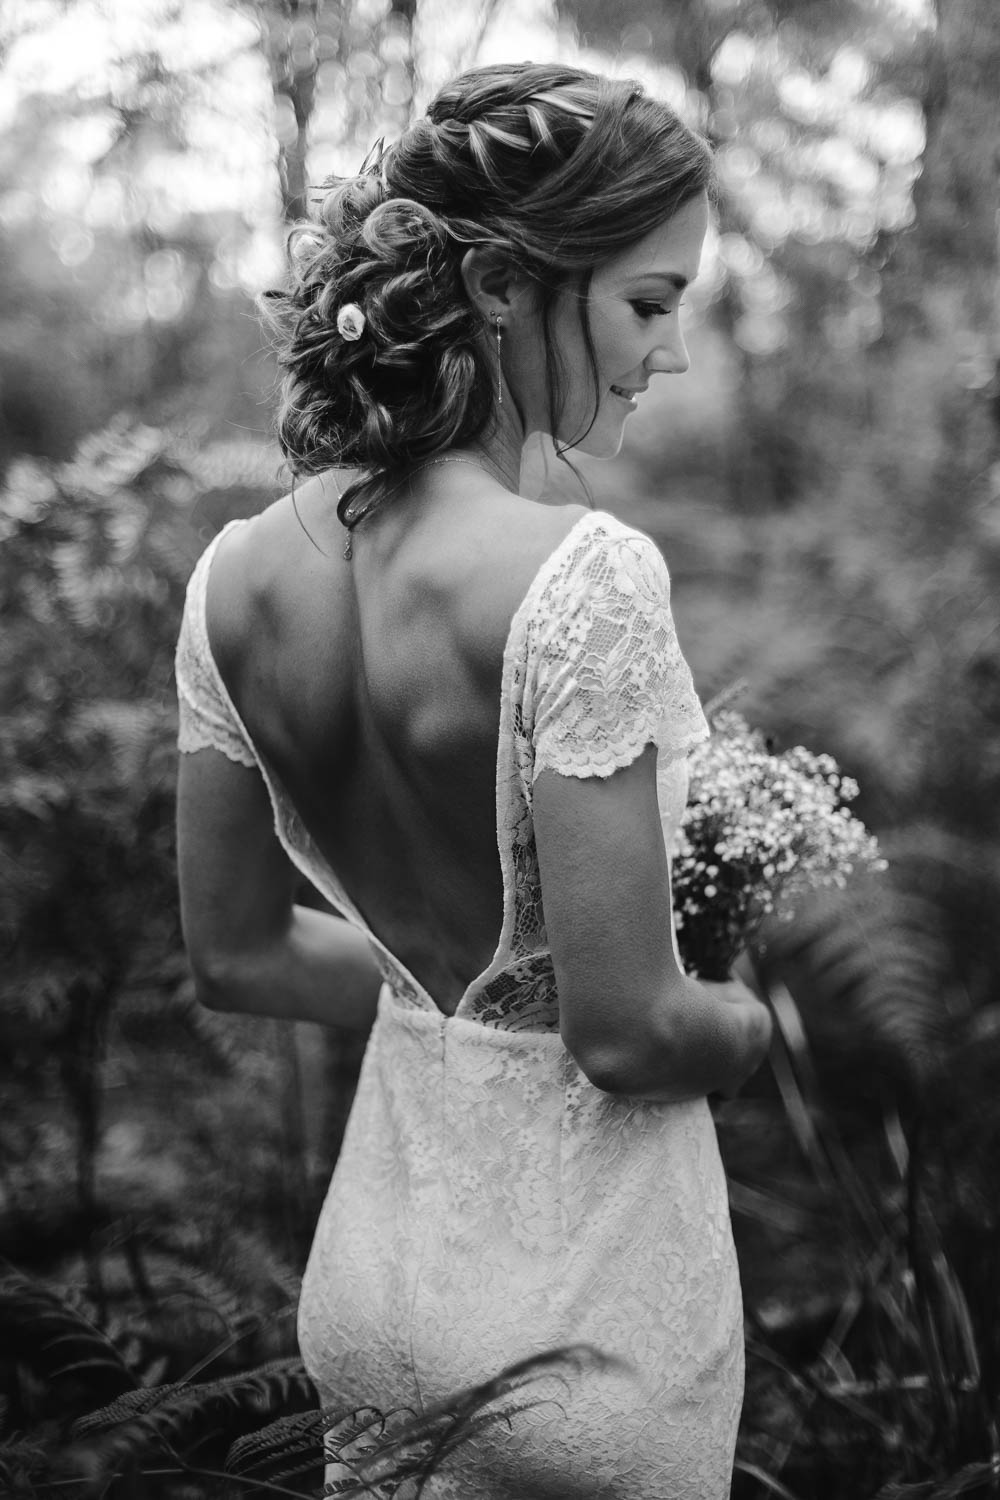 Stunning bohemian bride posing with her back towards the camera in the forest